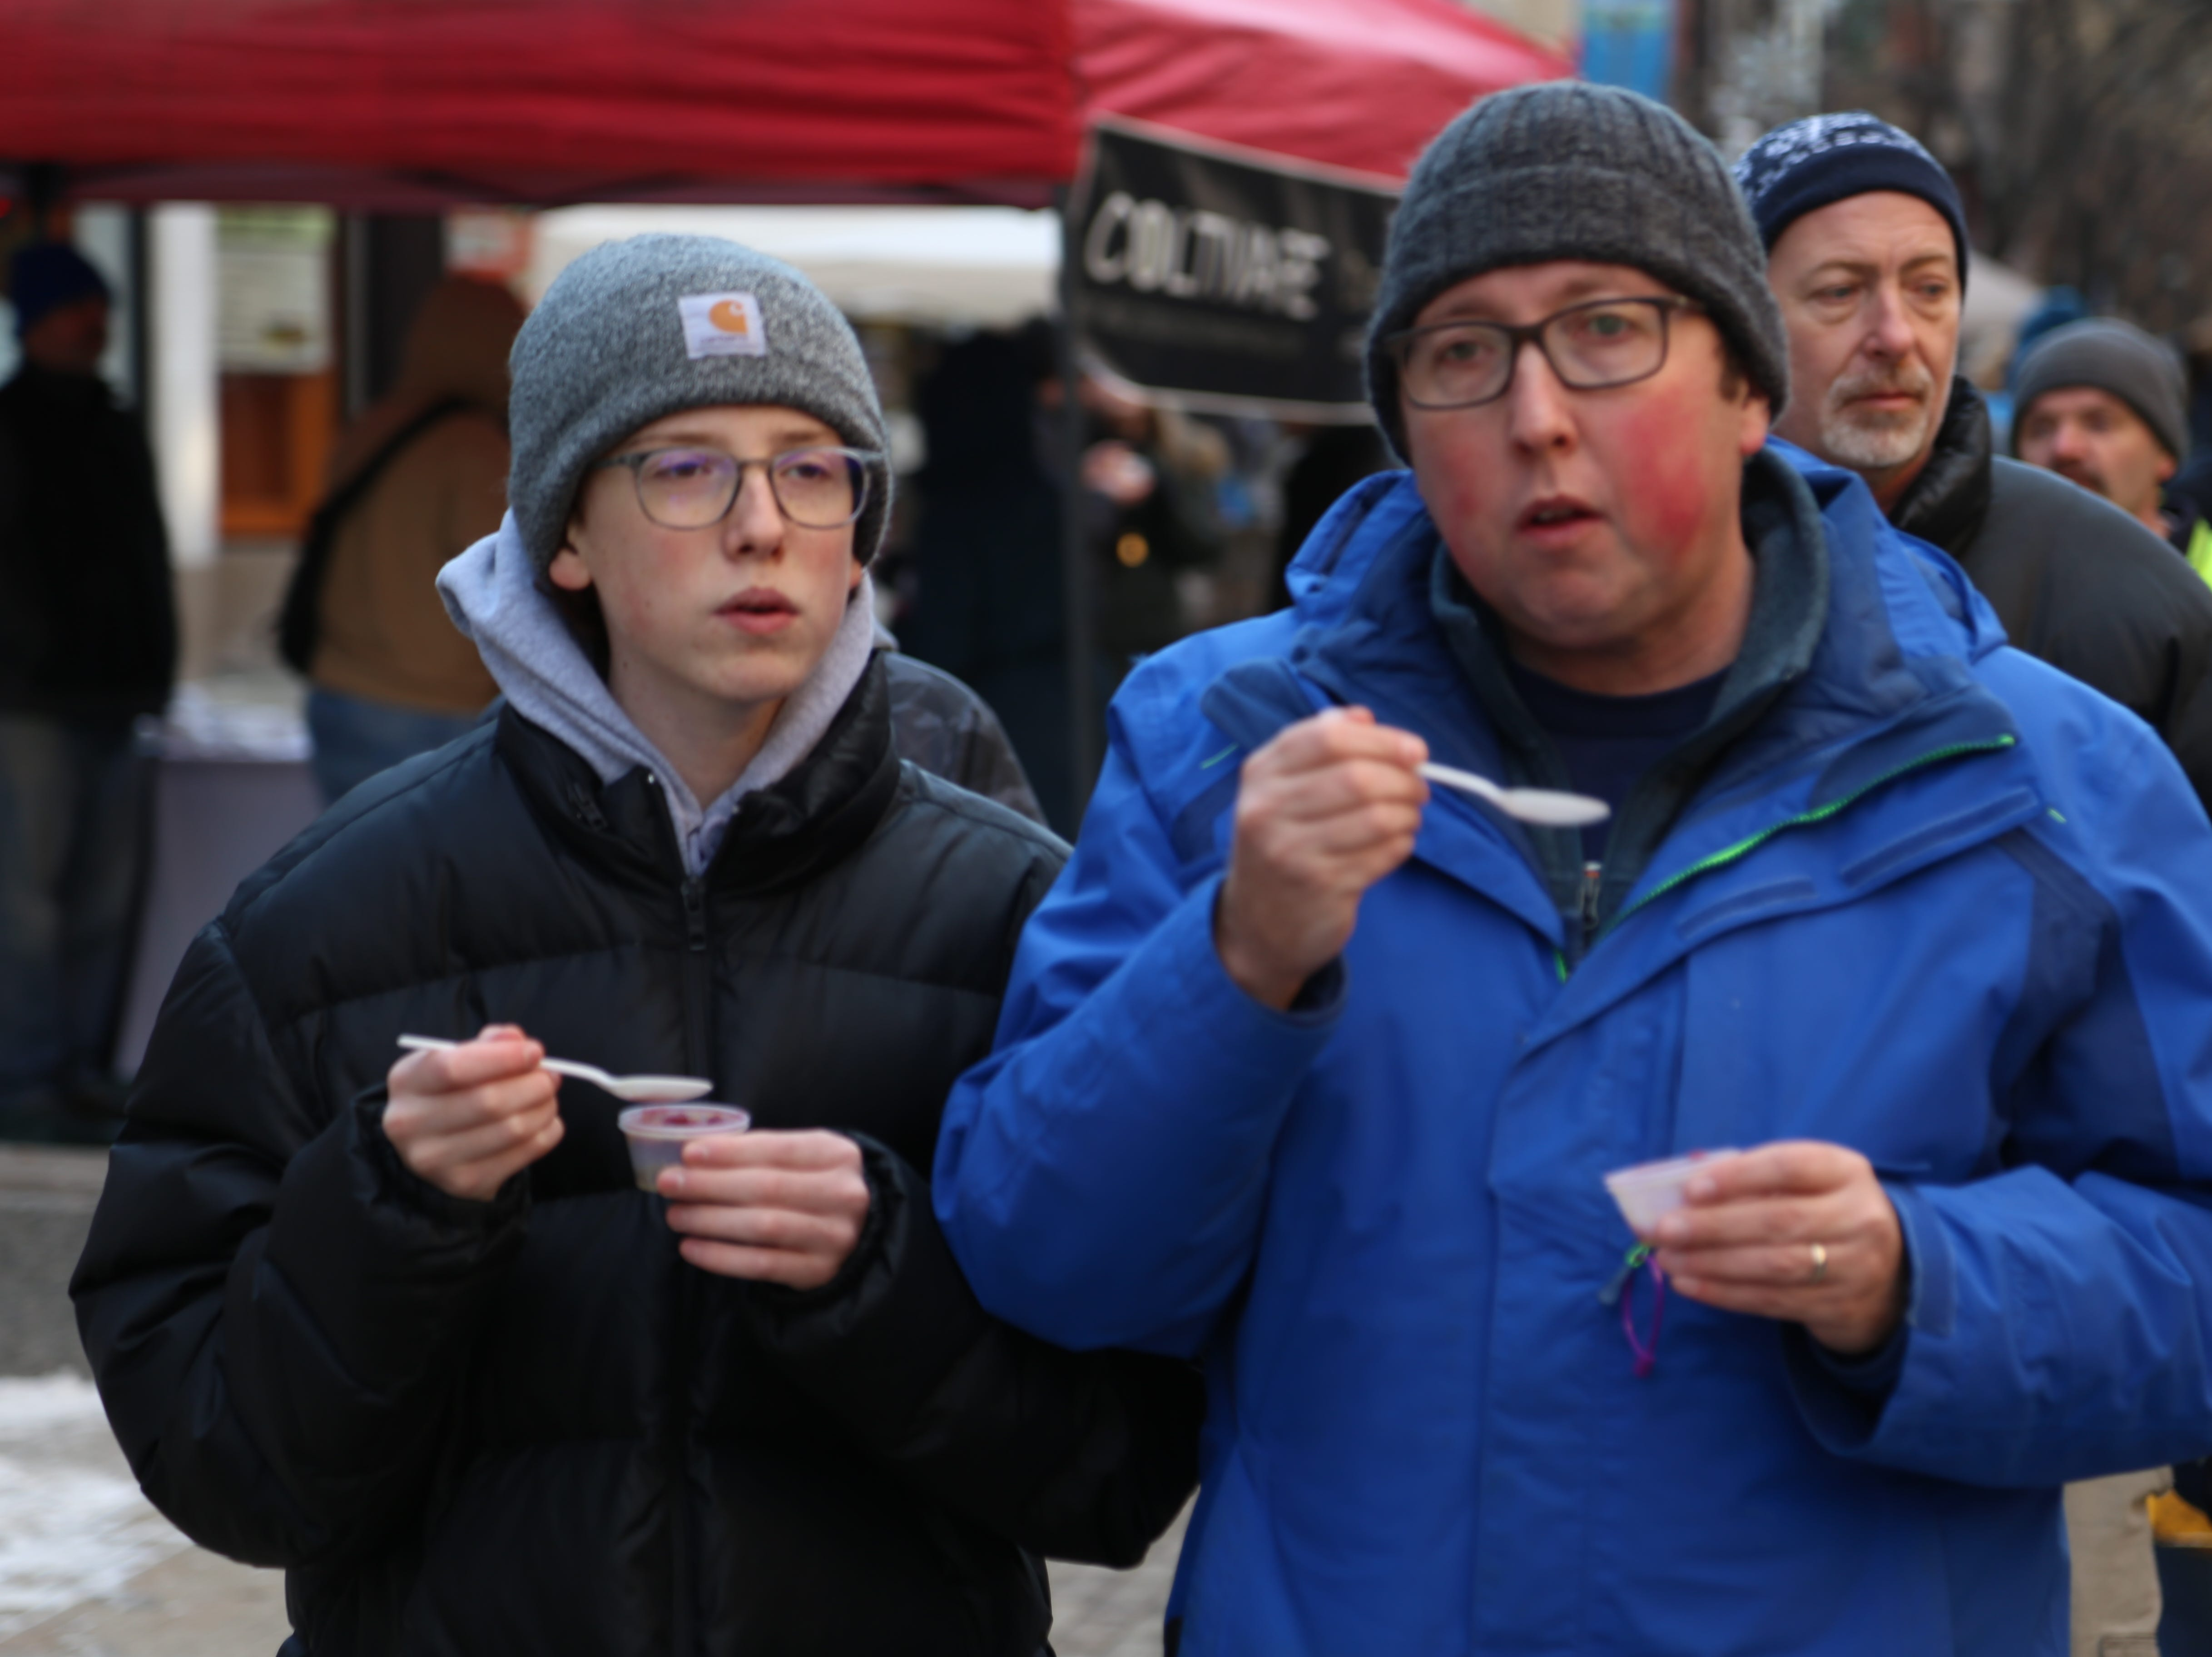 Residents and visitors ate chowder and other foods during the 2018 Ithaca Ice Fest.